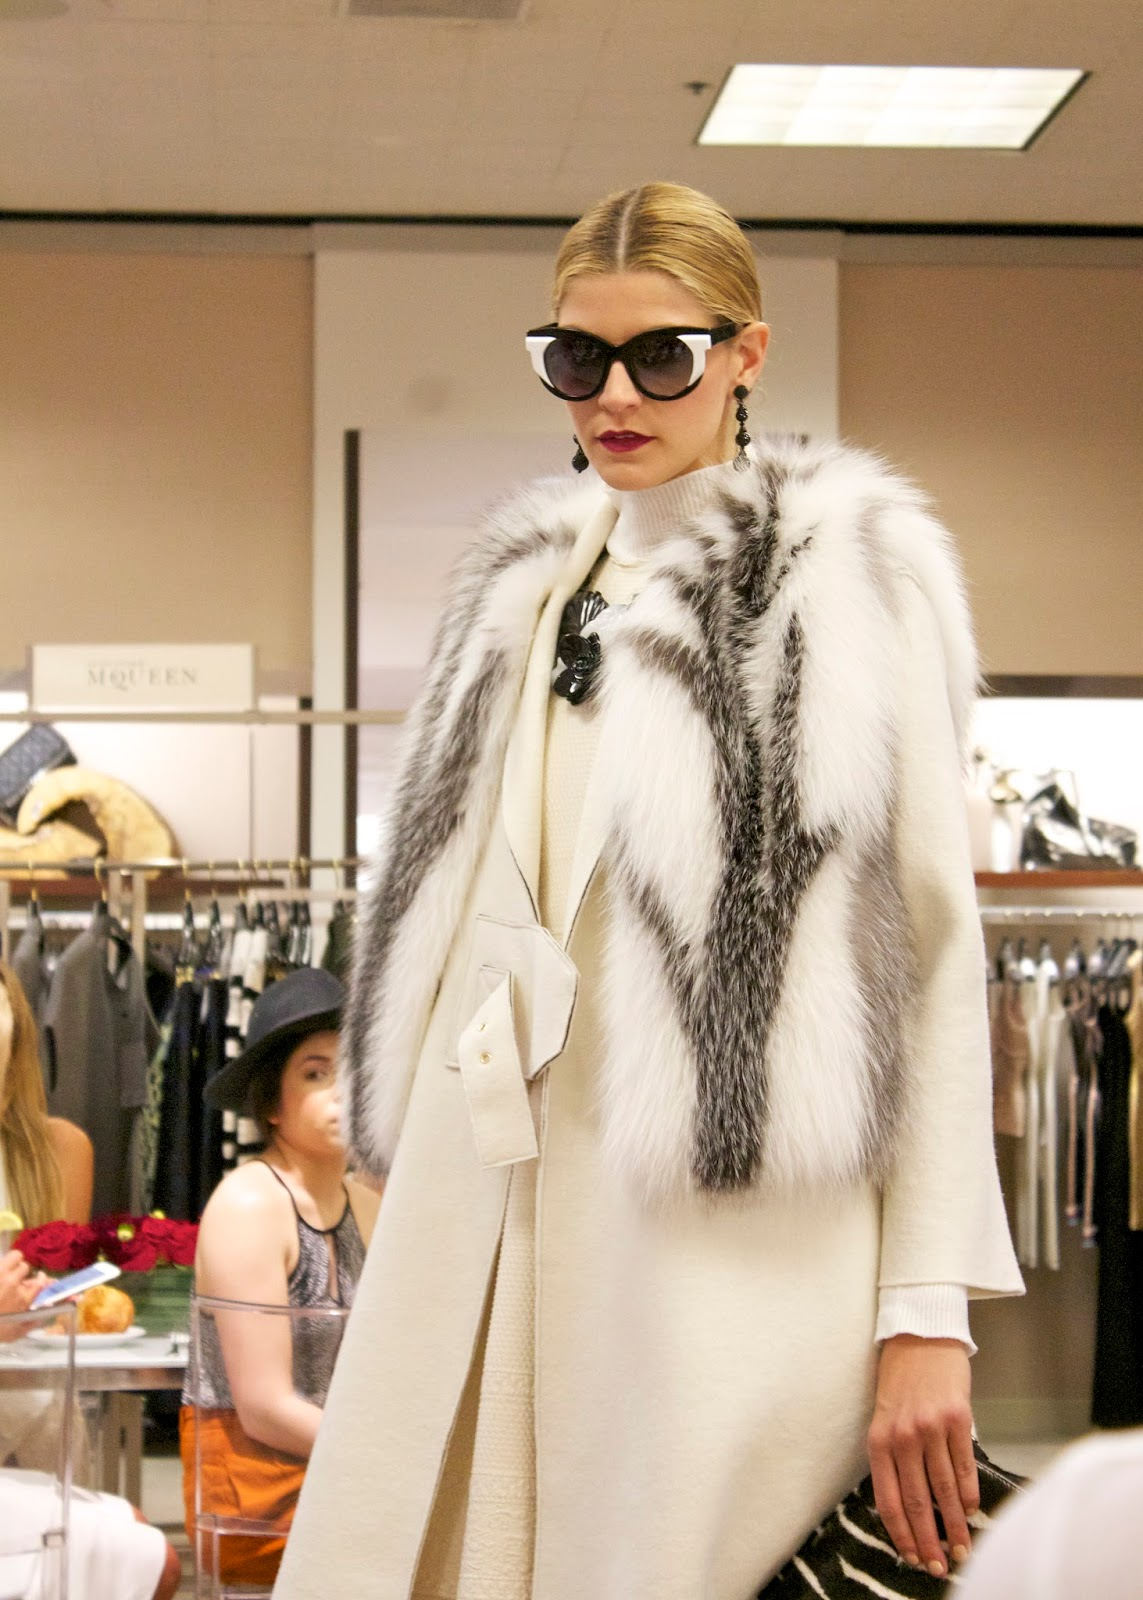 White out, Winter White, faux fur that looks real, elegant in white